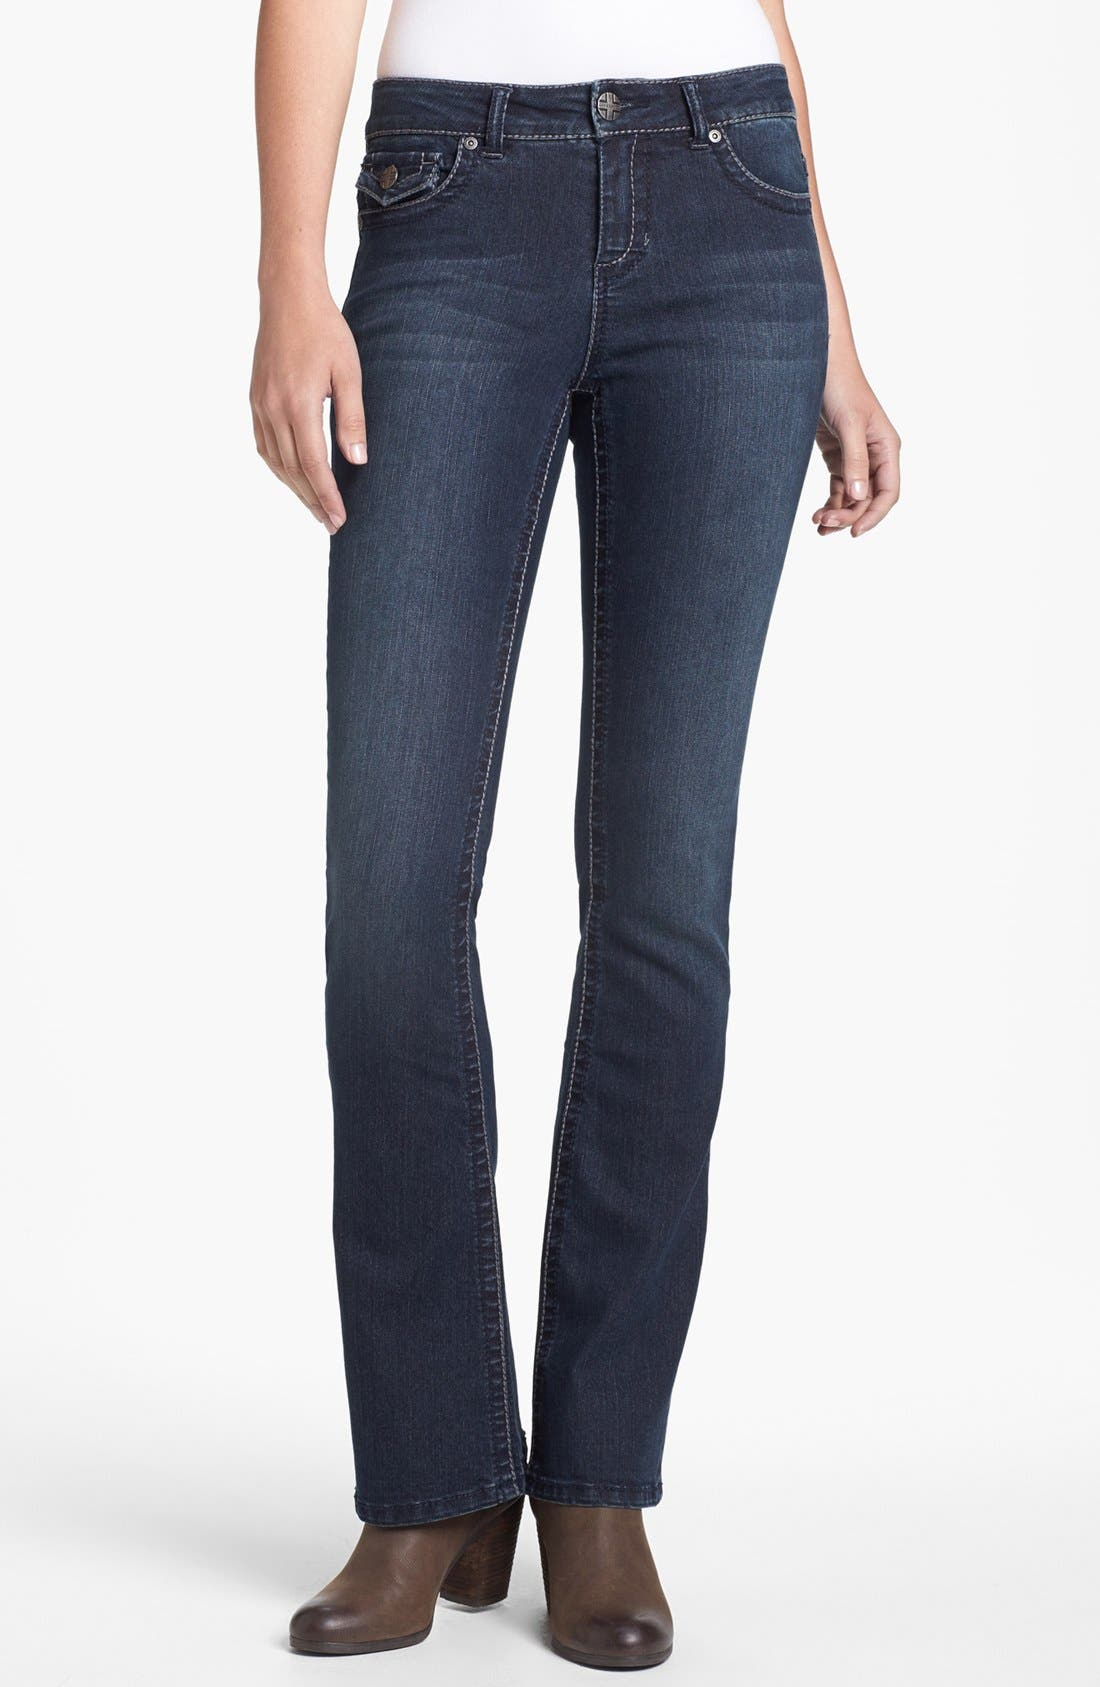 Alternate Image 1 Selected - Liverpool Jeans Company 'Rita' Flap Pocket Stretch Bootcut Jeans